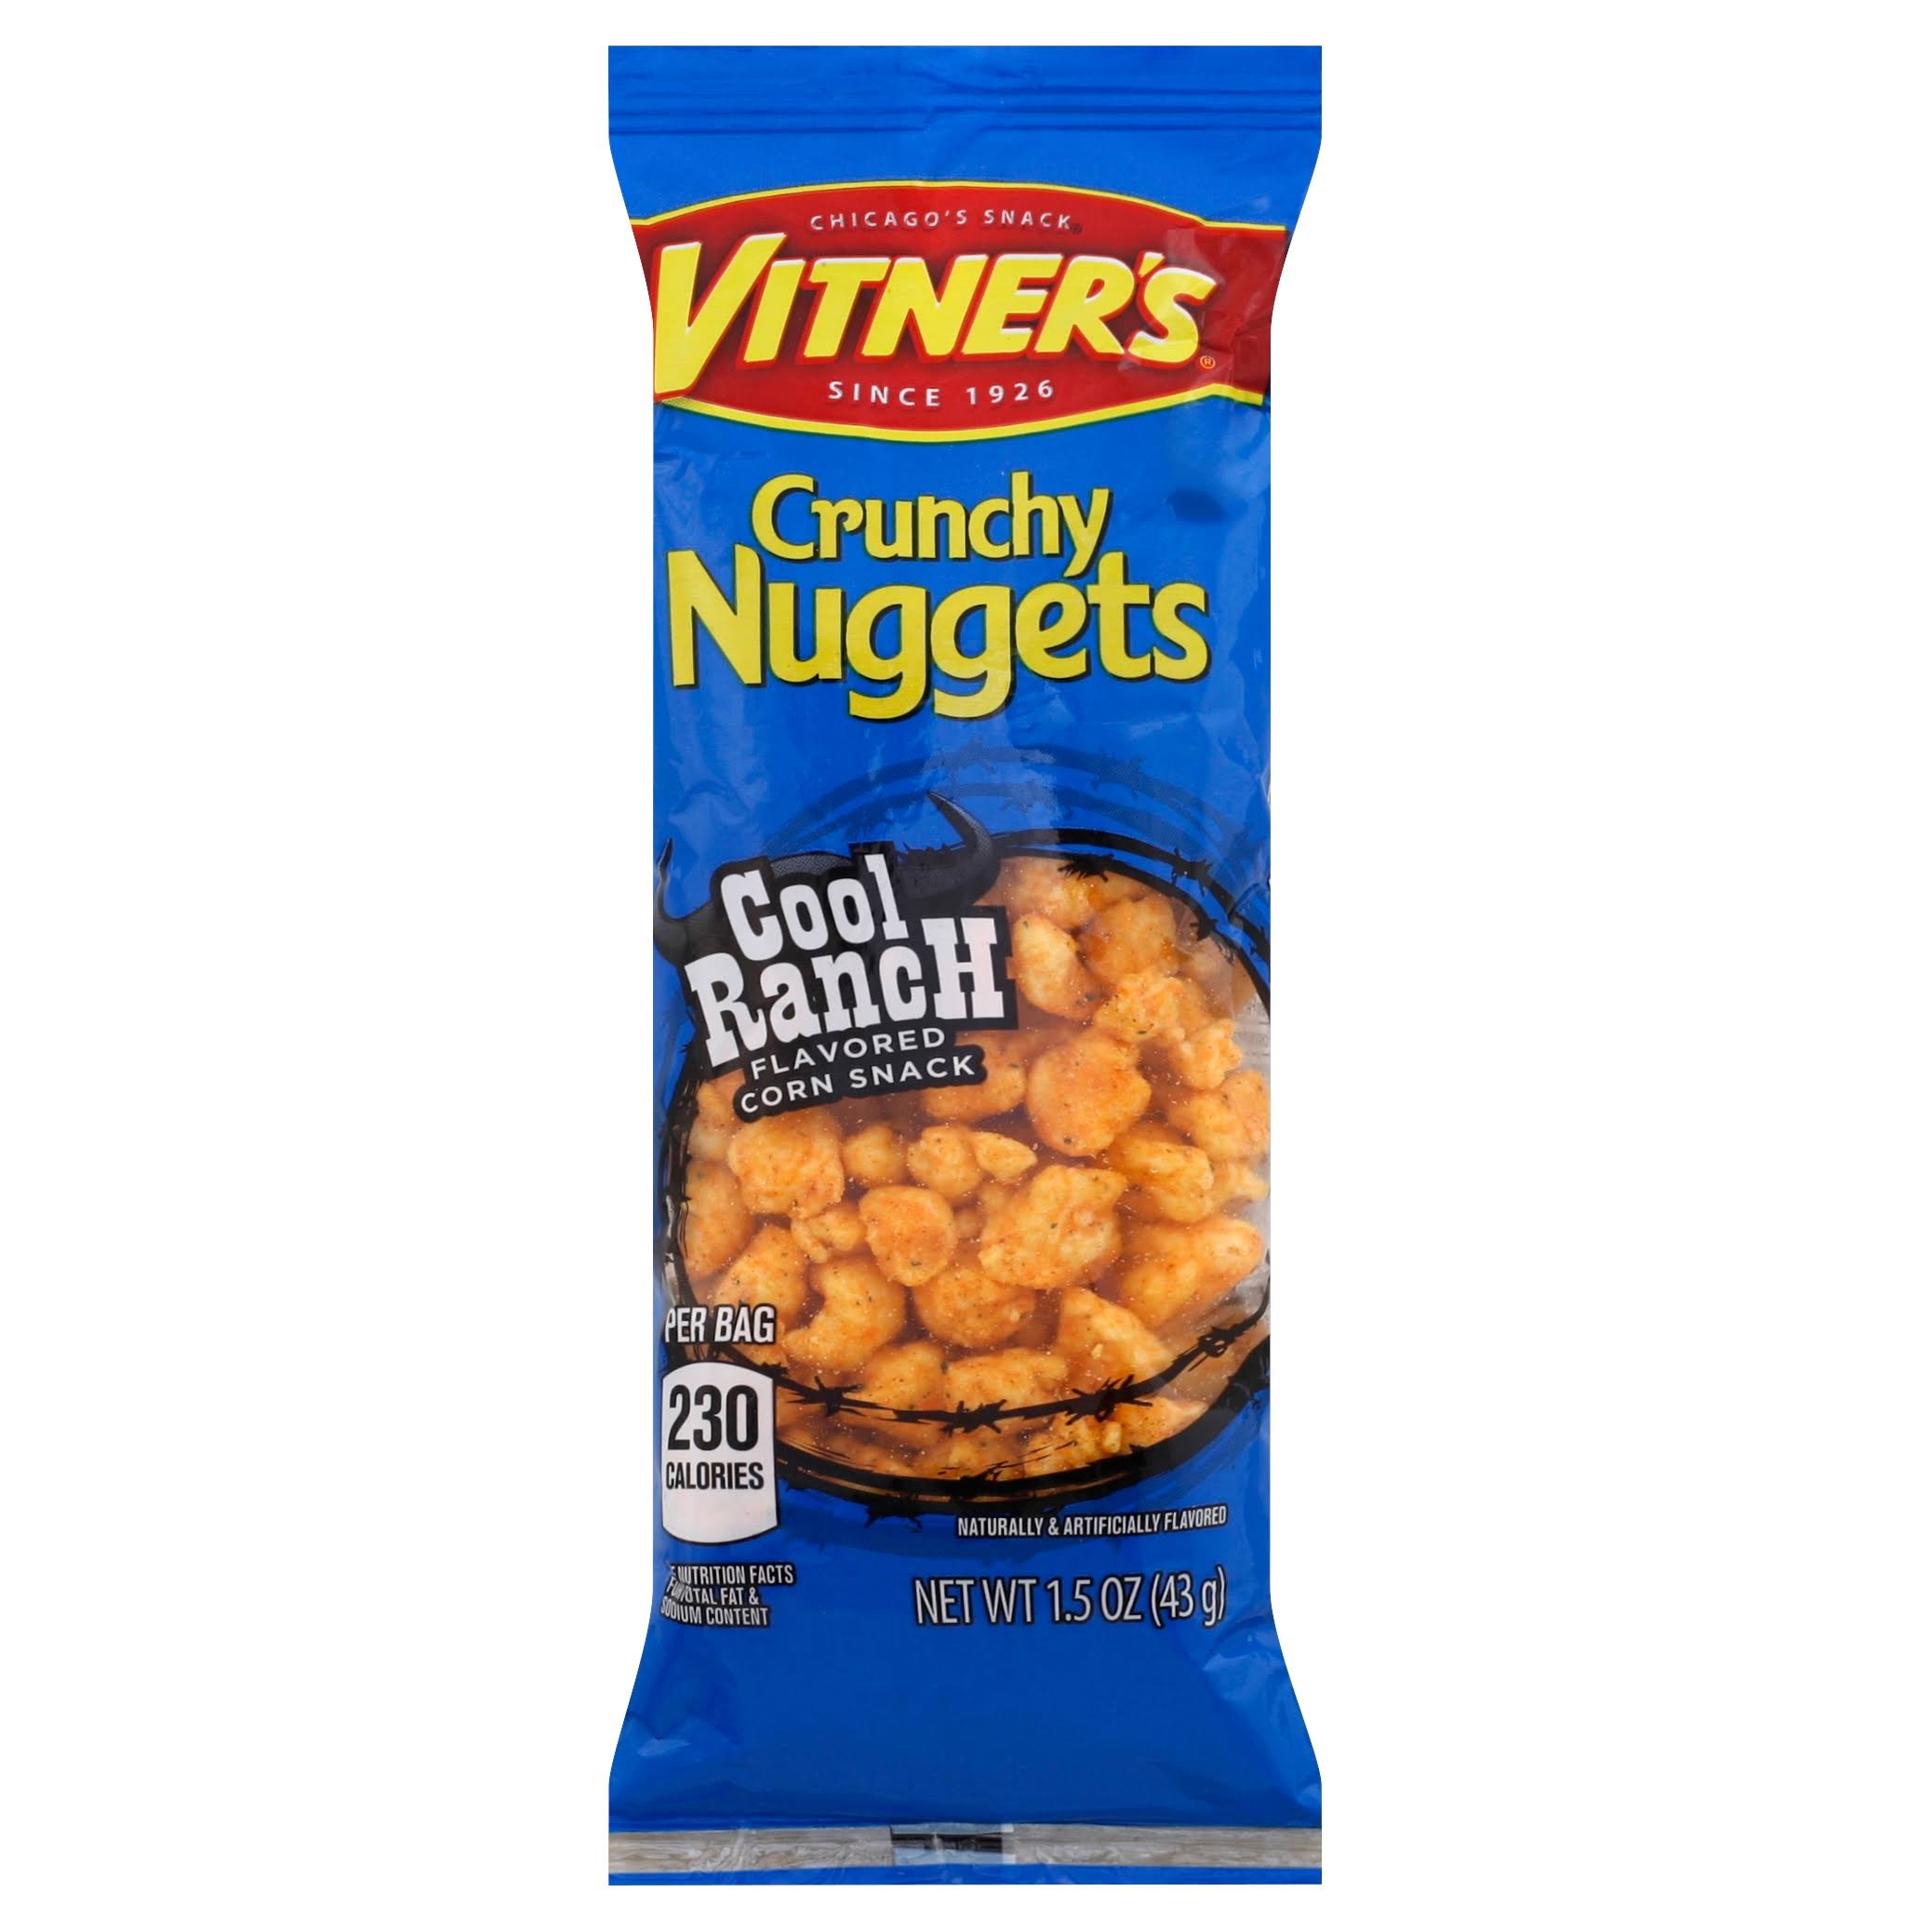 Vitners Corn Snack, Cool Ranch Flavored, Crunchy Nuggets - 1.5 oz